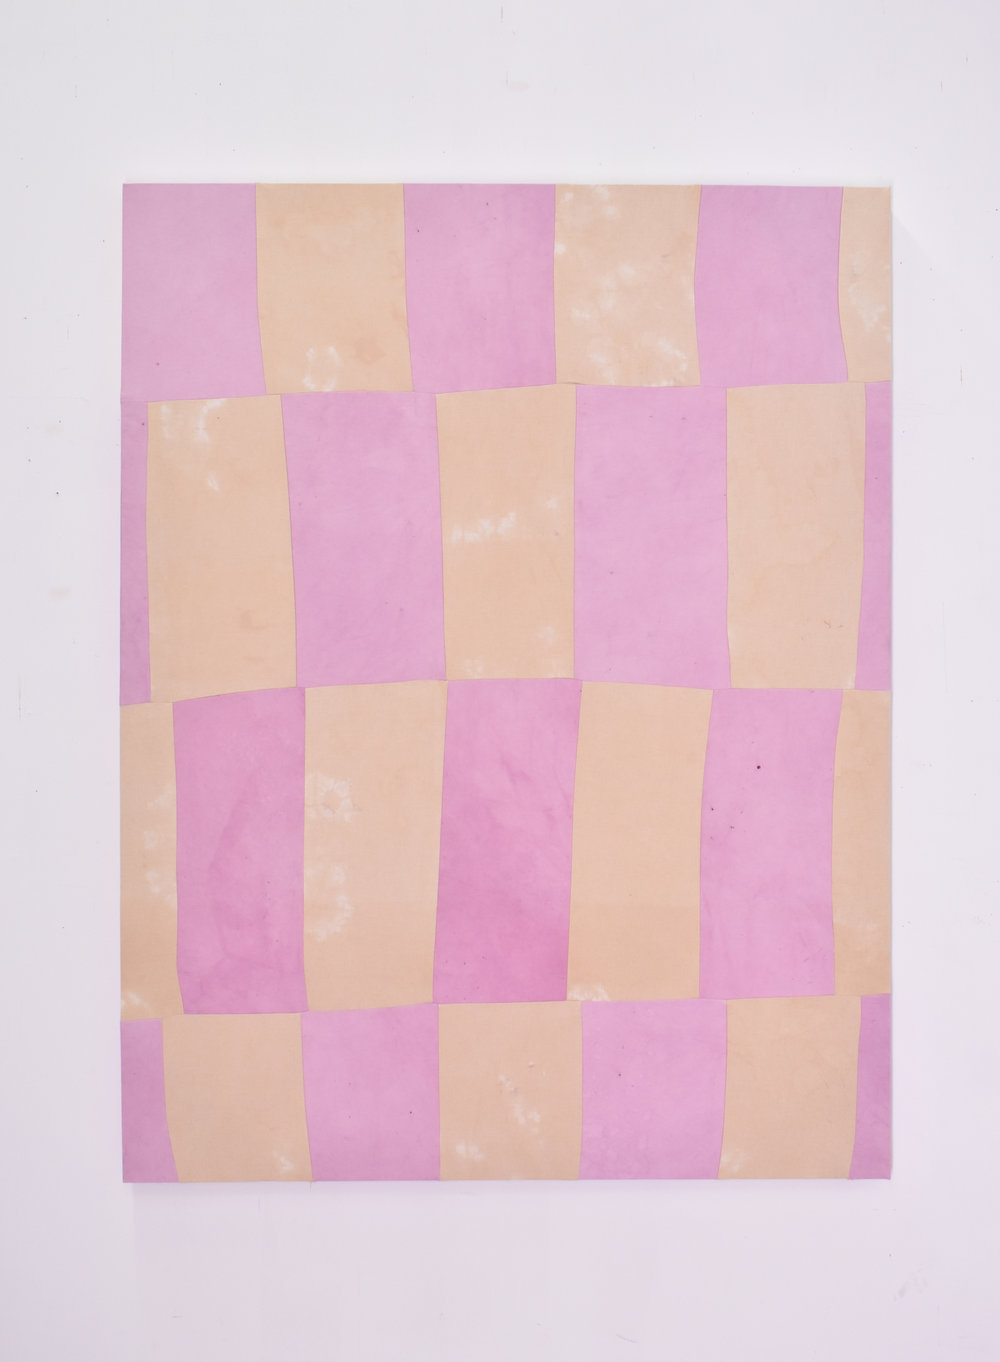 Cochineal & Avocado, 2018 Cochineal and avocado dyed canvas, thread